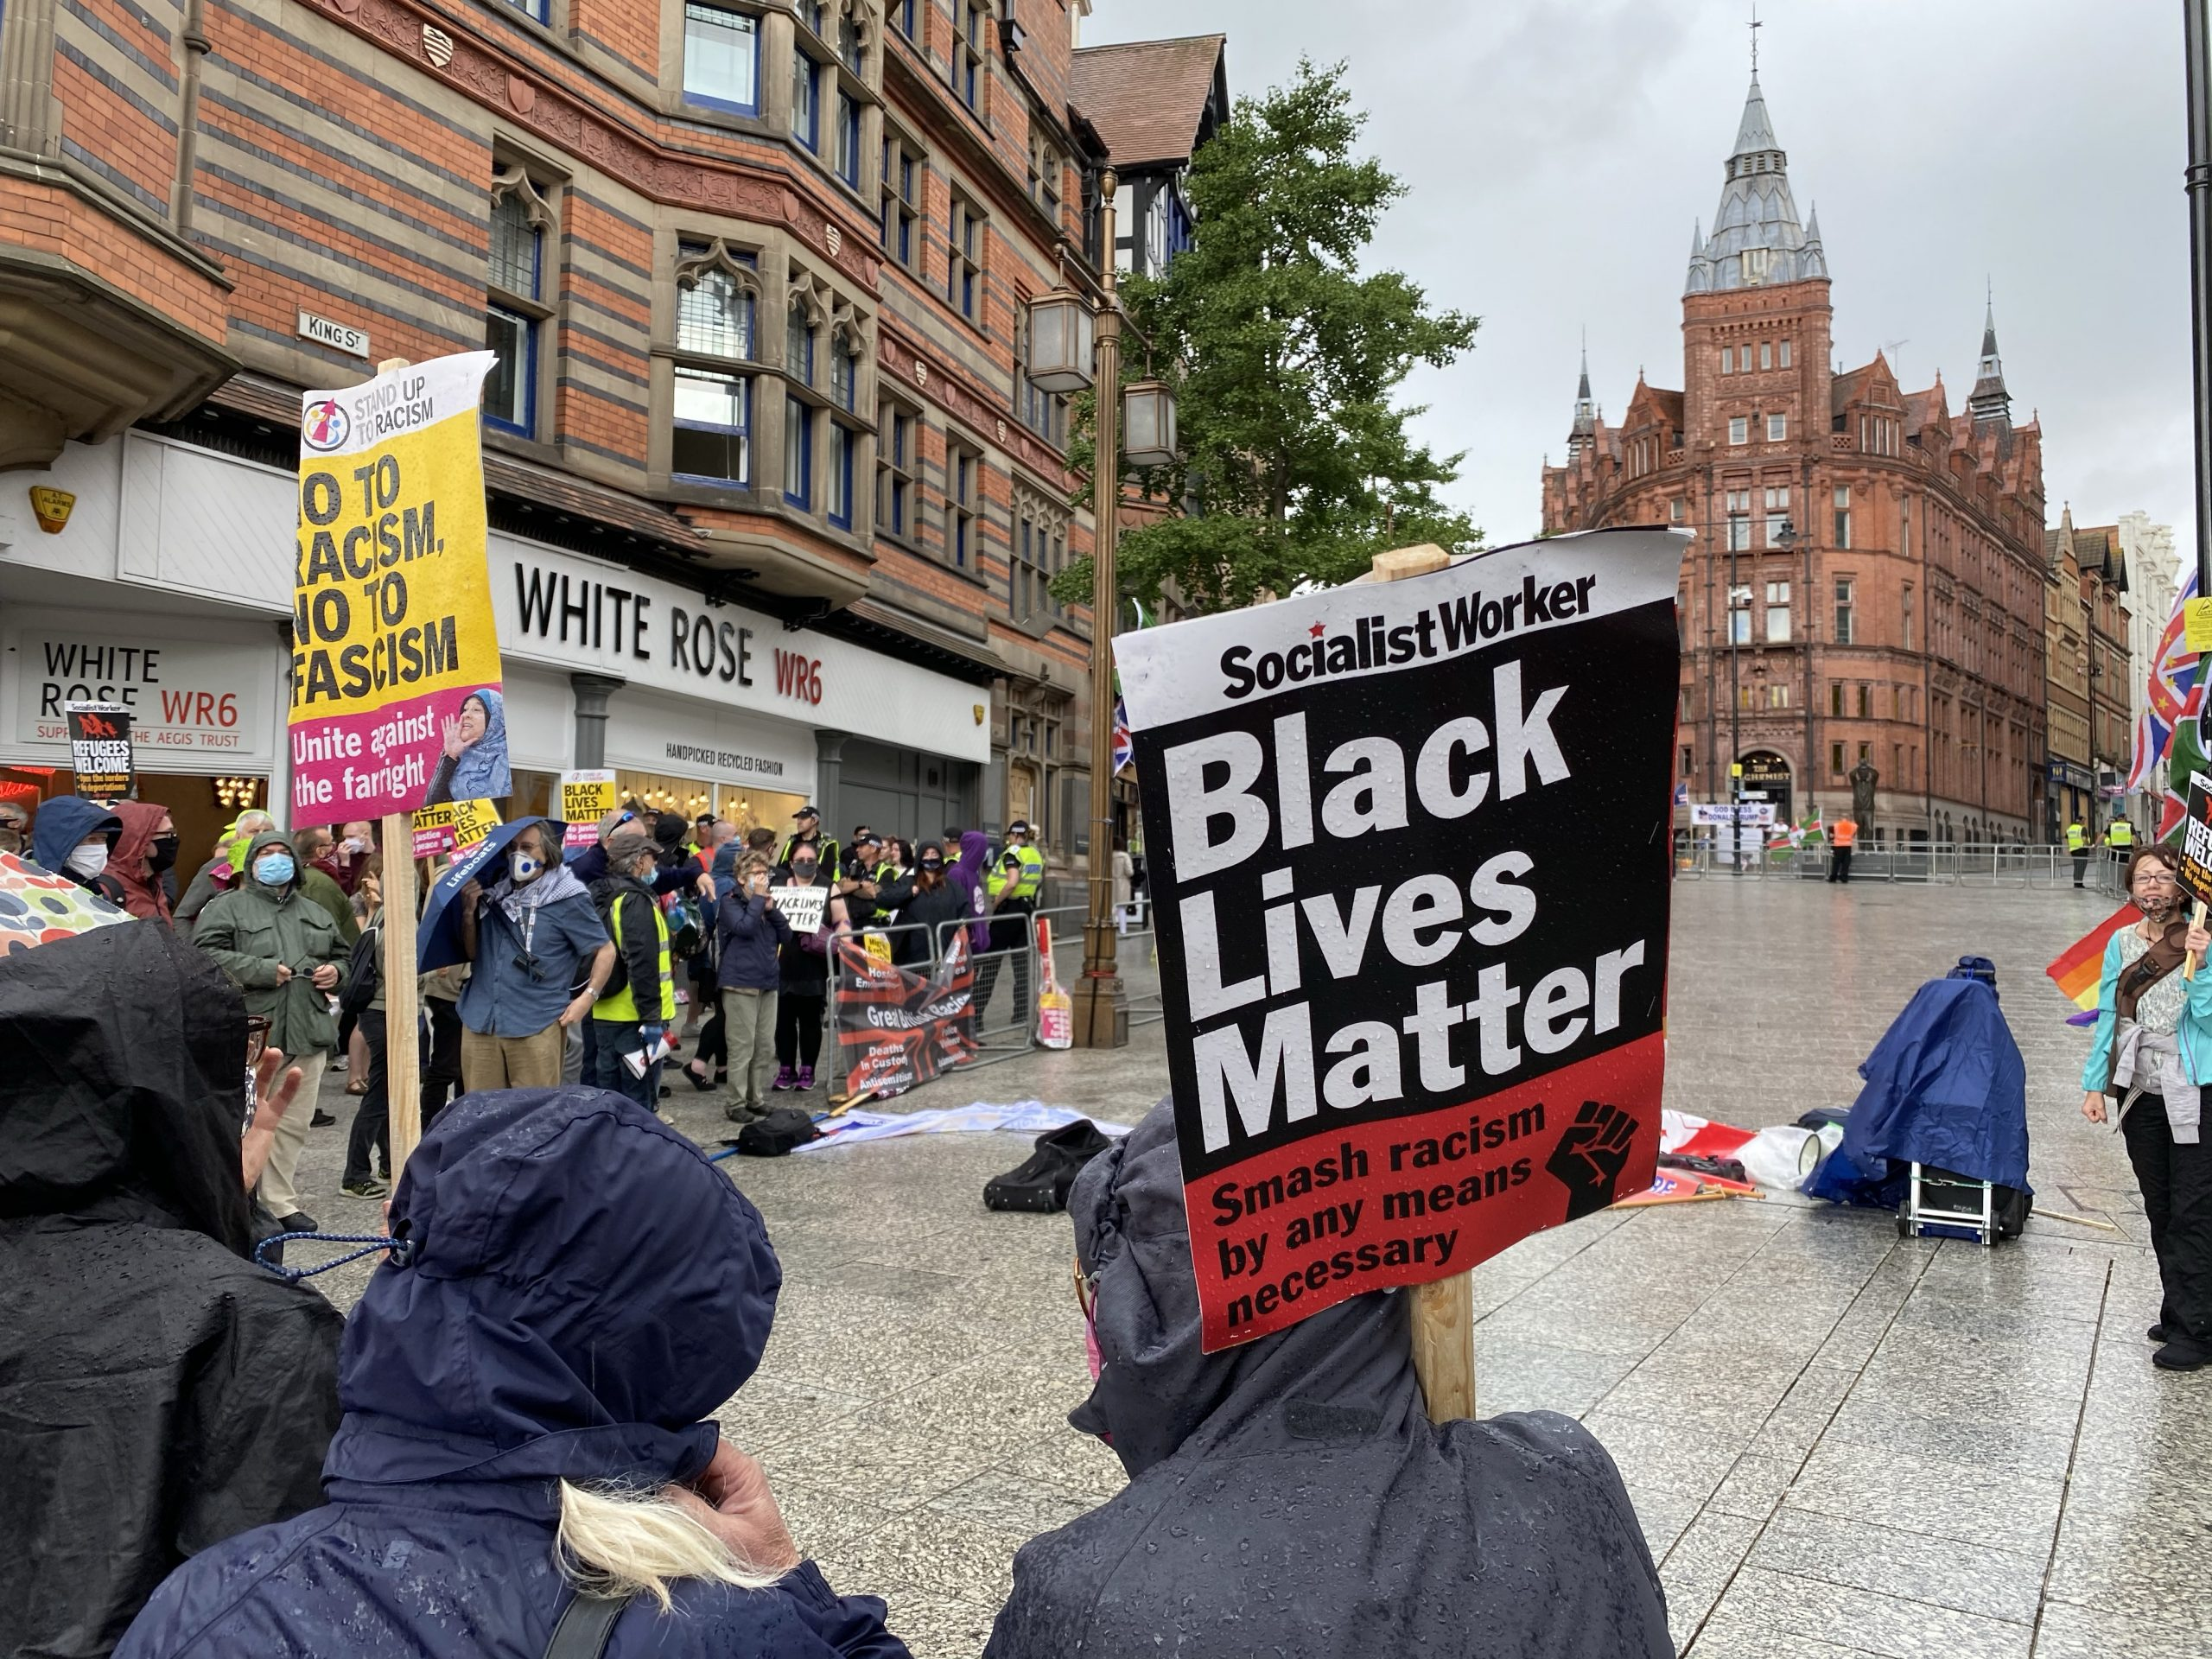 Nottingham city centre brought to a standstill by protests